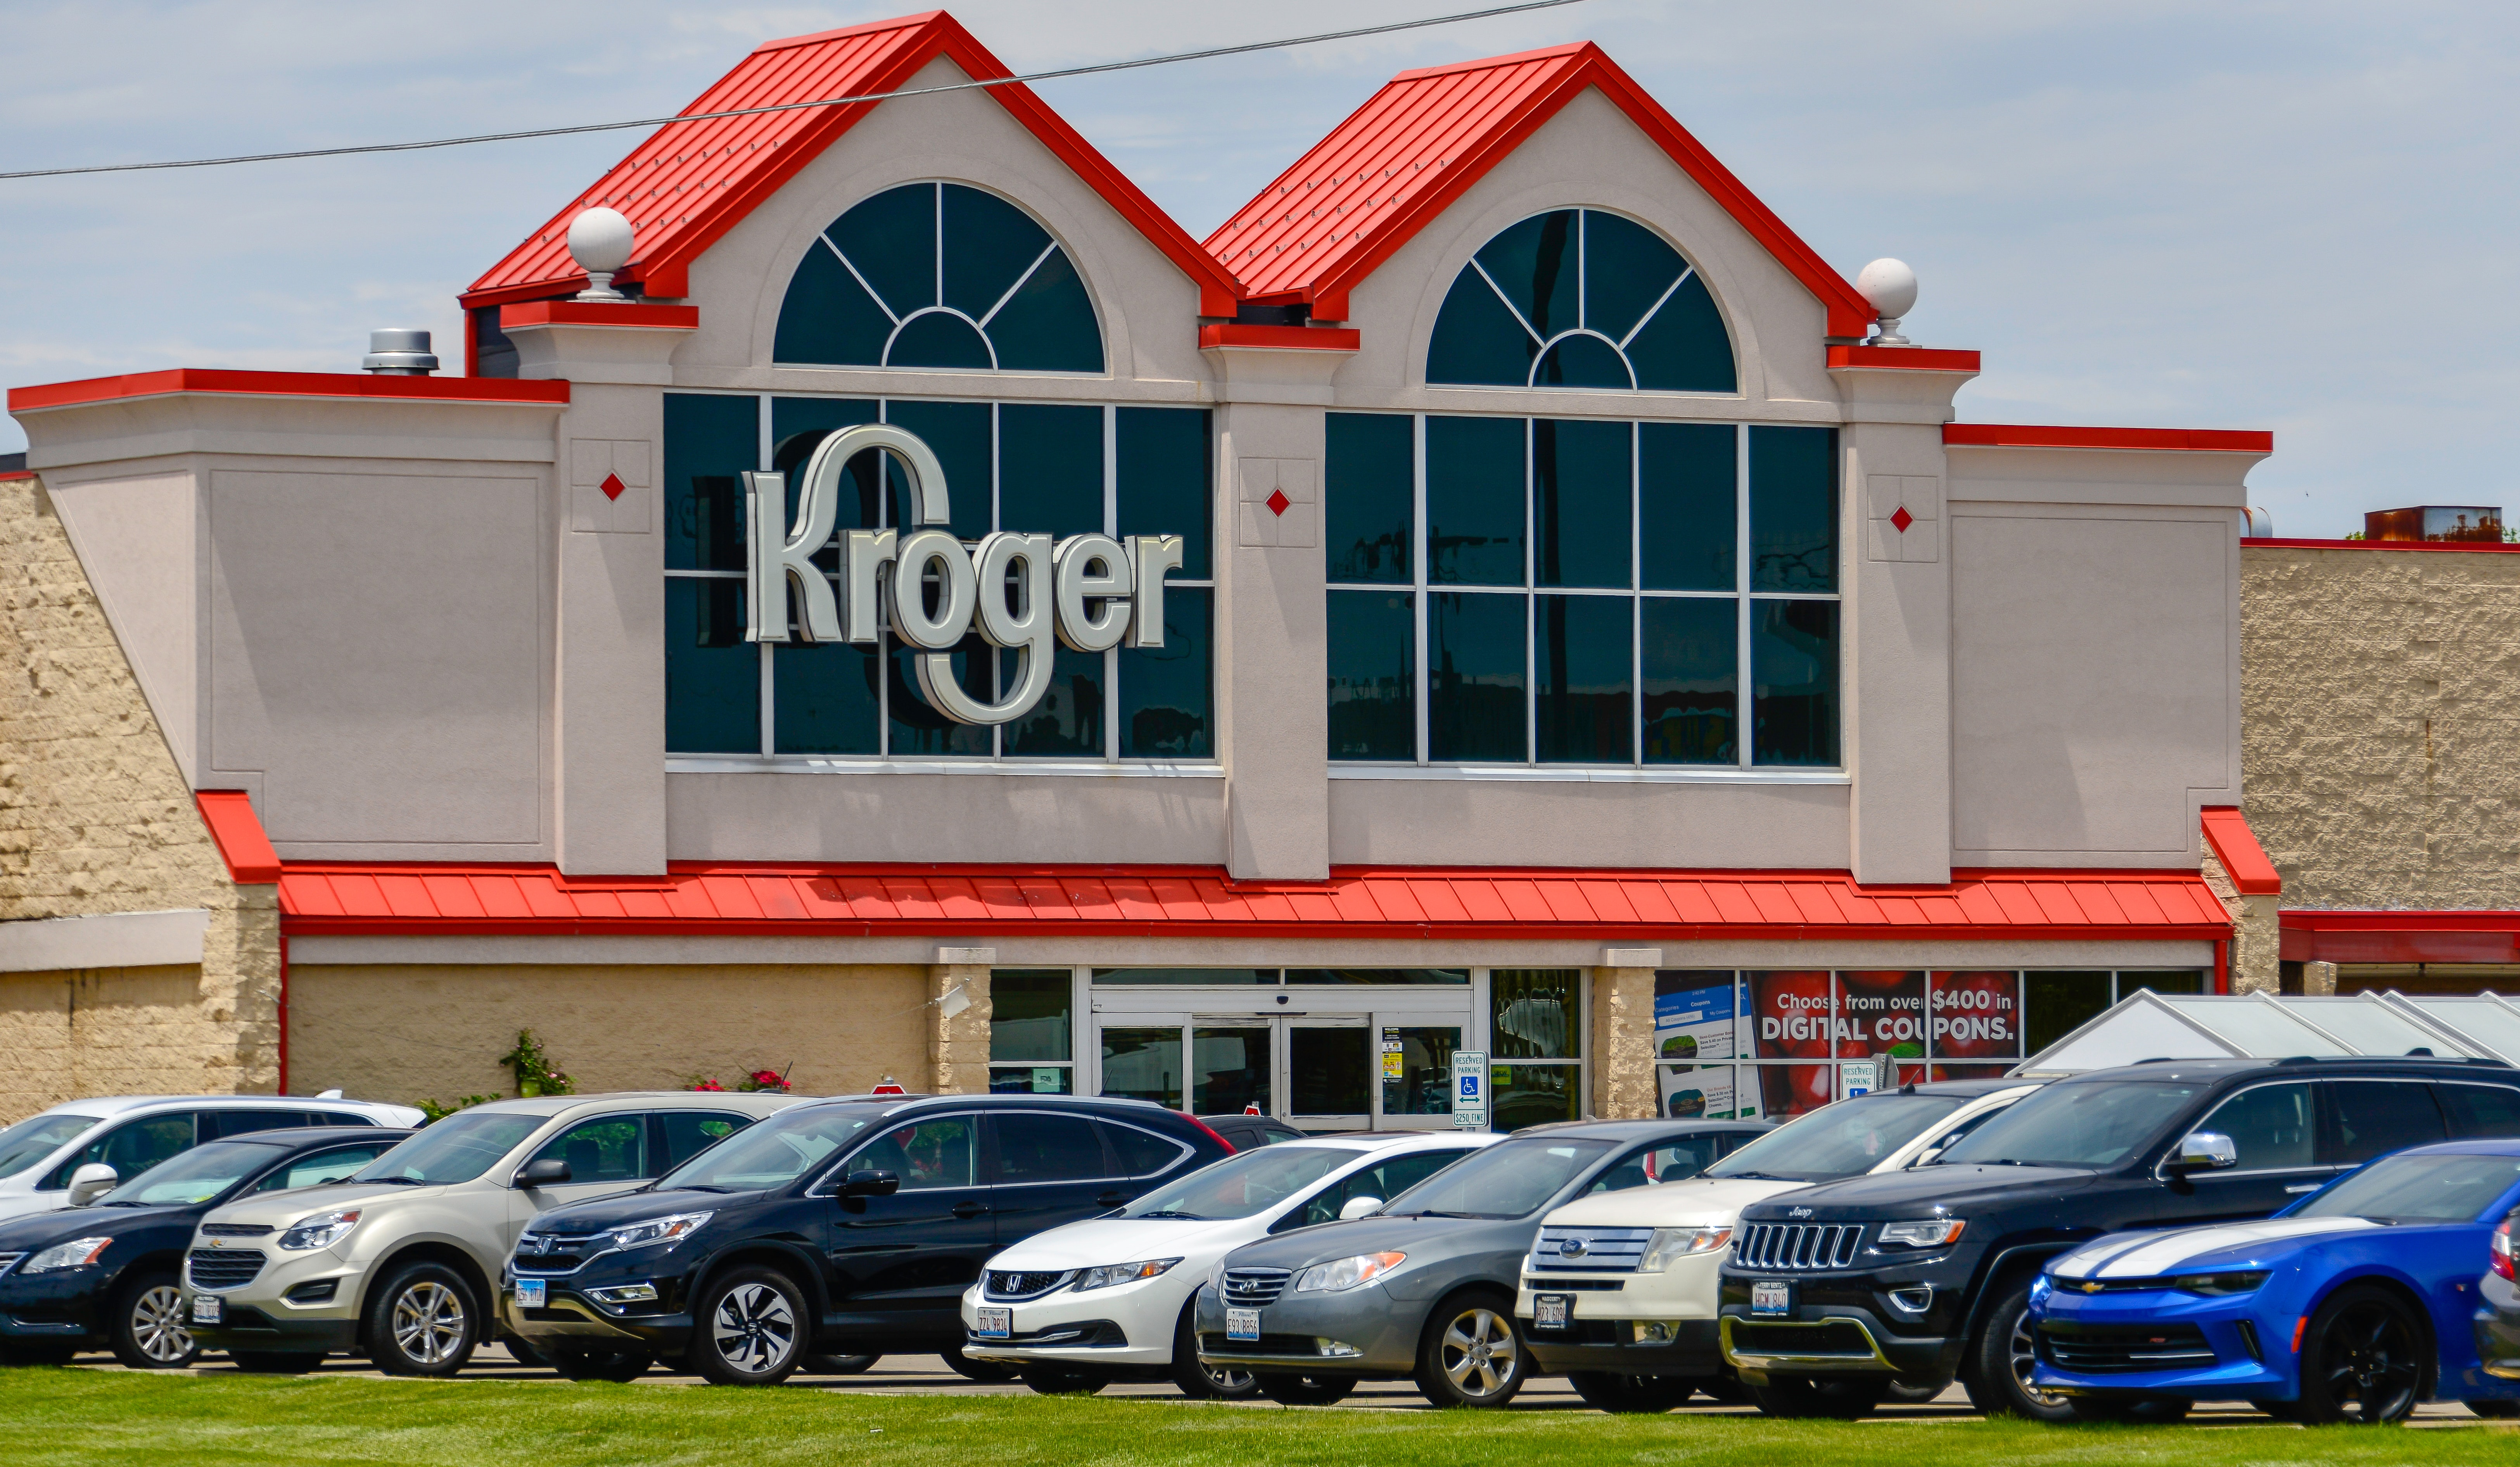 Is Kroger Open Christmas Eve 2020 Kroger's Christmas Eve & Christmas Hours 2019 Could Save Your Holiday